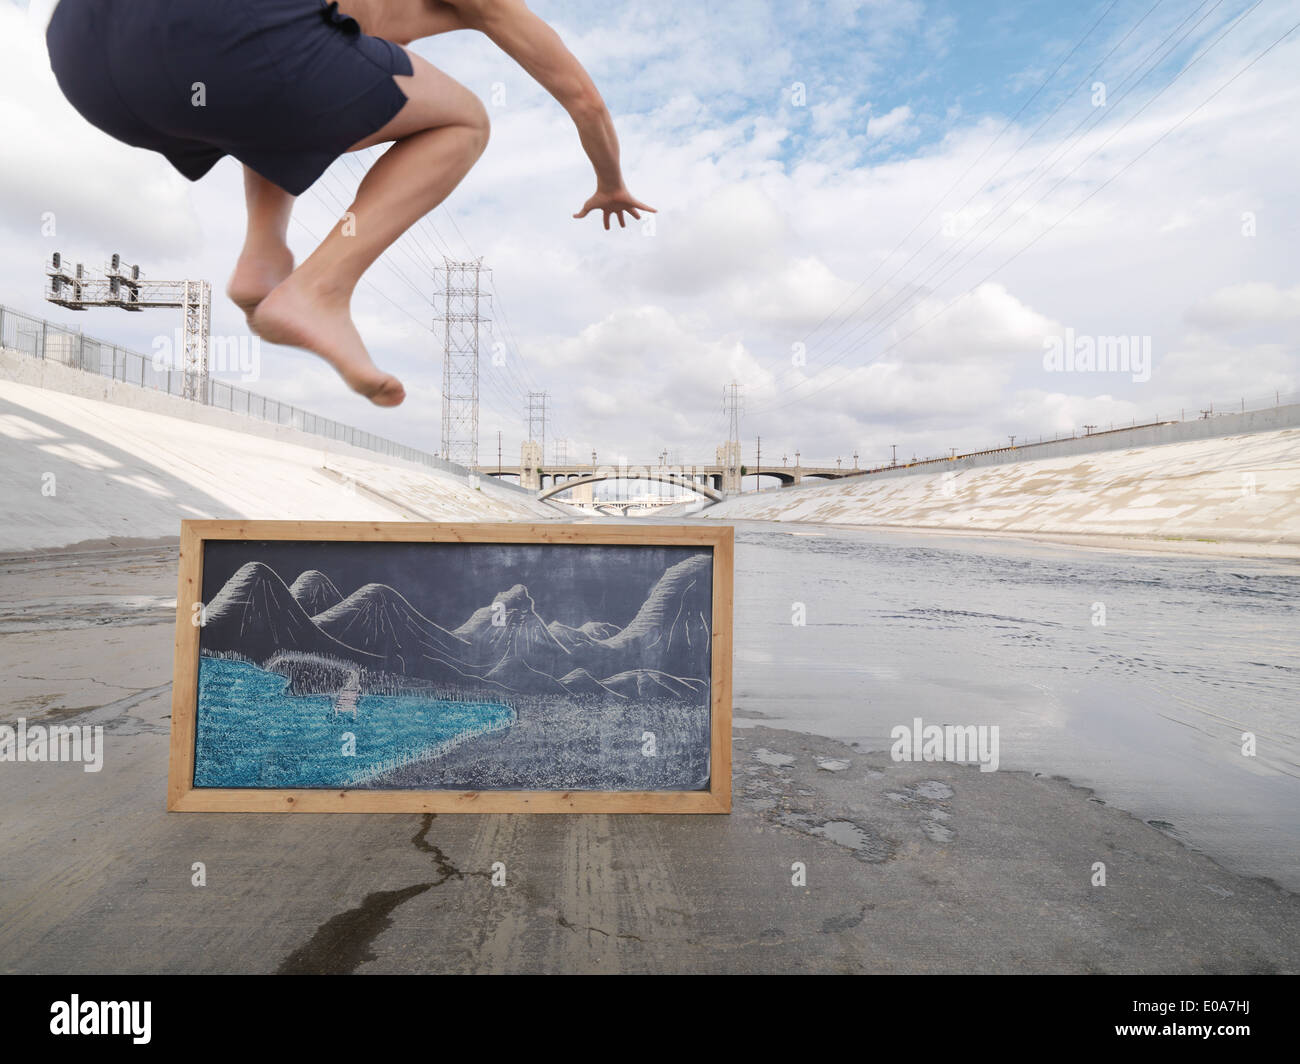 Man pretending to jump into lake, Los Angeles River, Los Angeles, California, USA - Stock Image